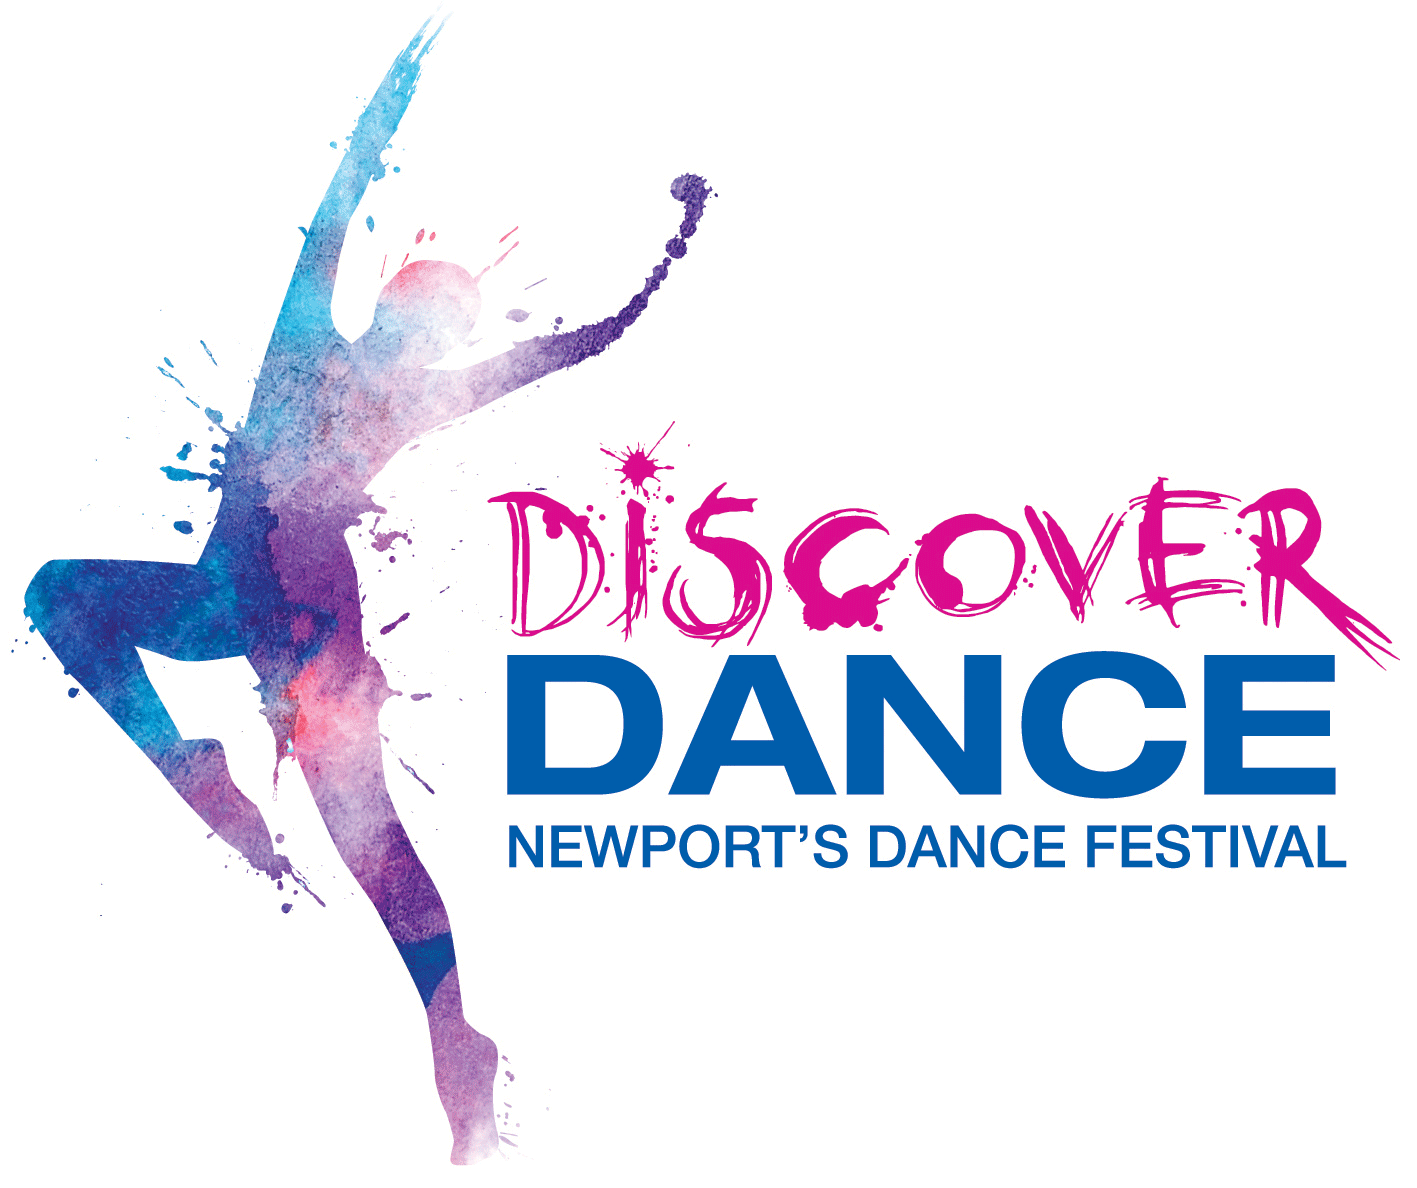 dance logos graphic design png 2 png image